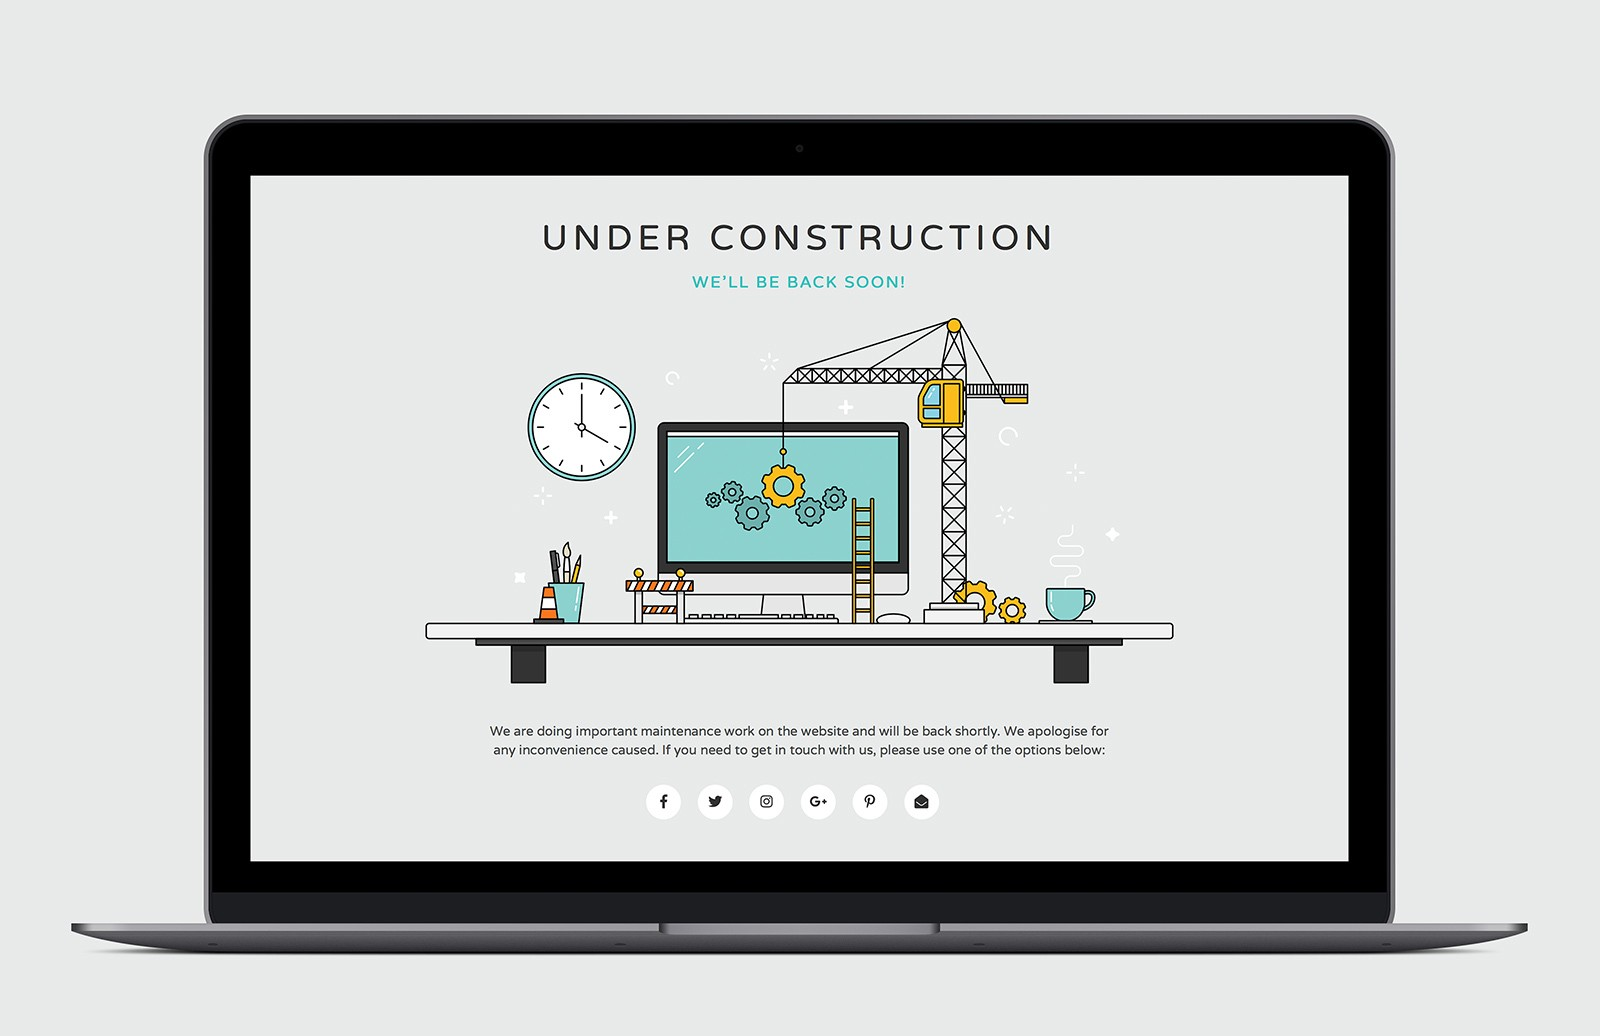 Html Under Construction Page Preview 1